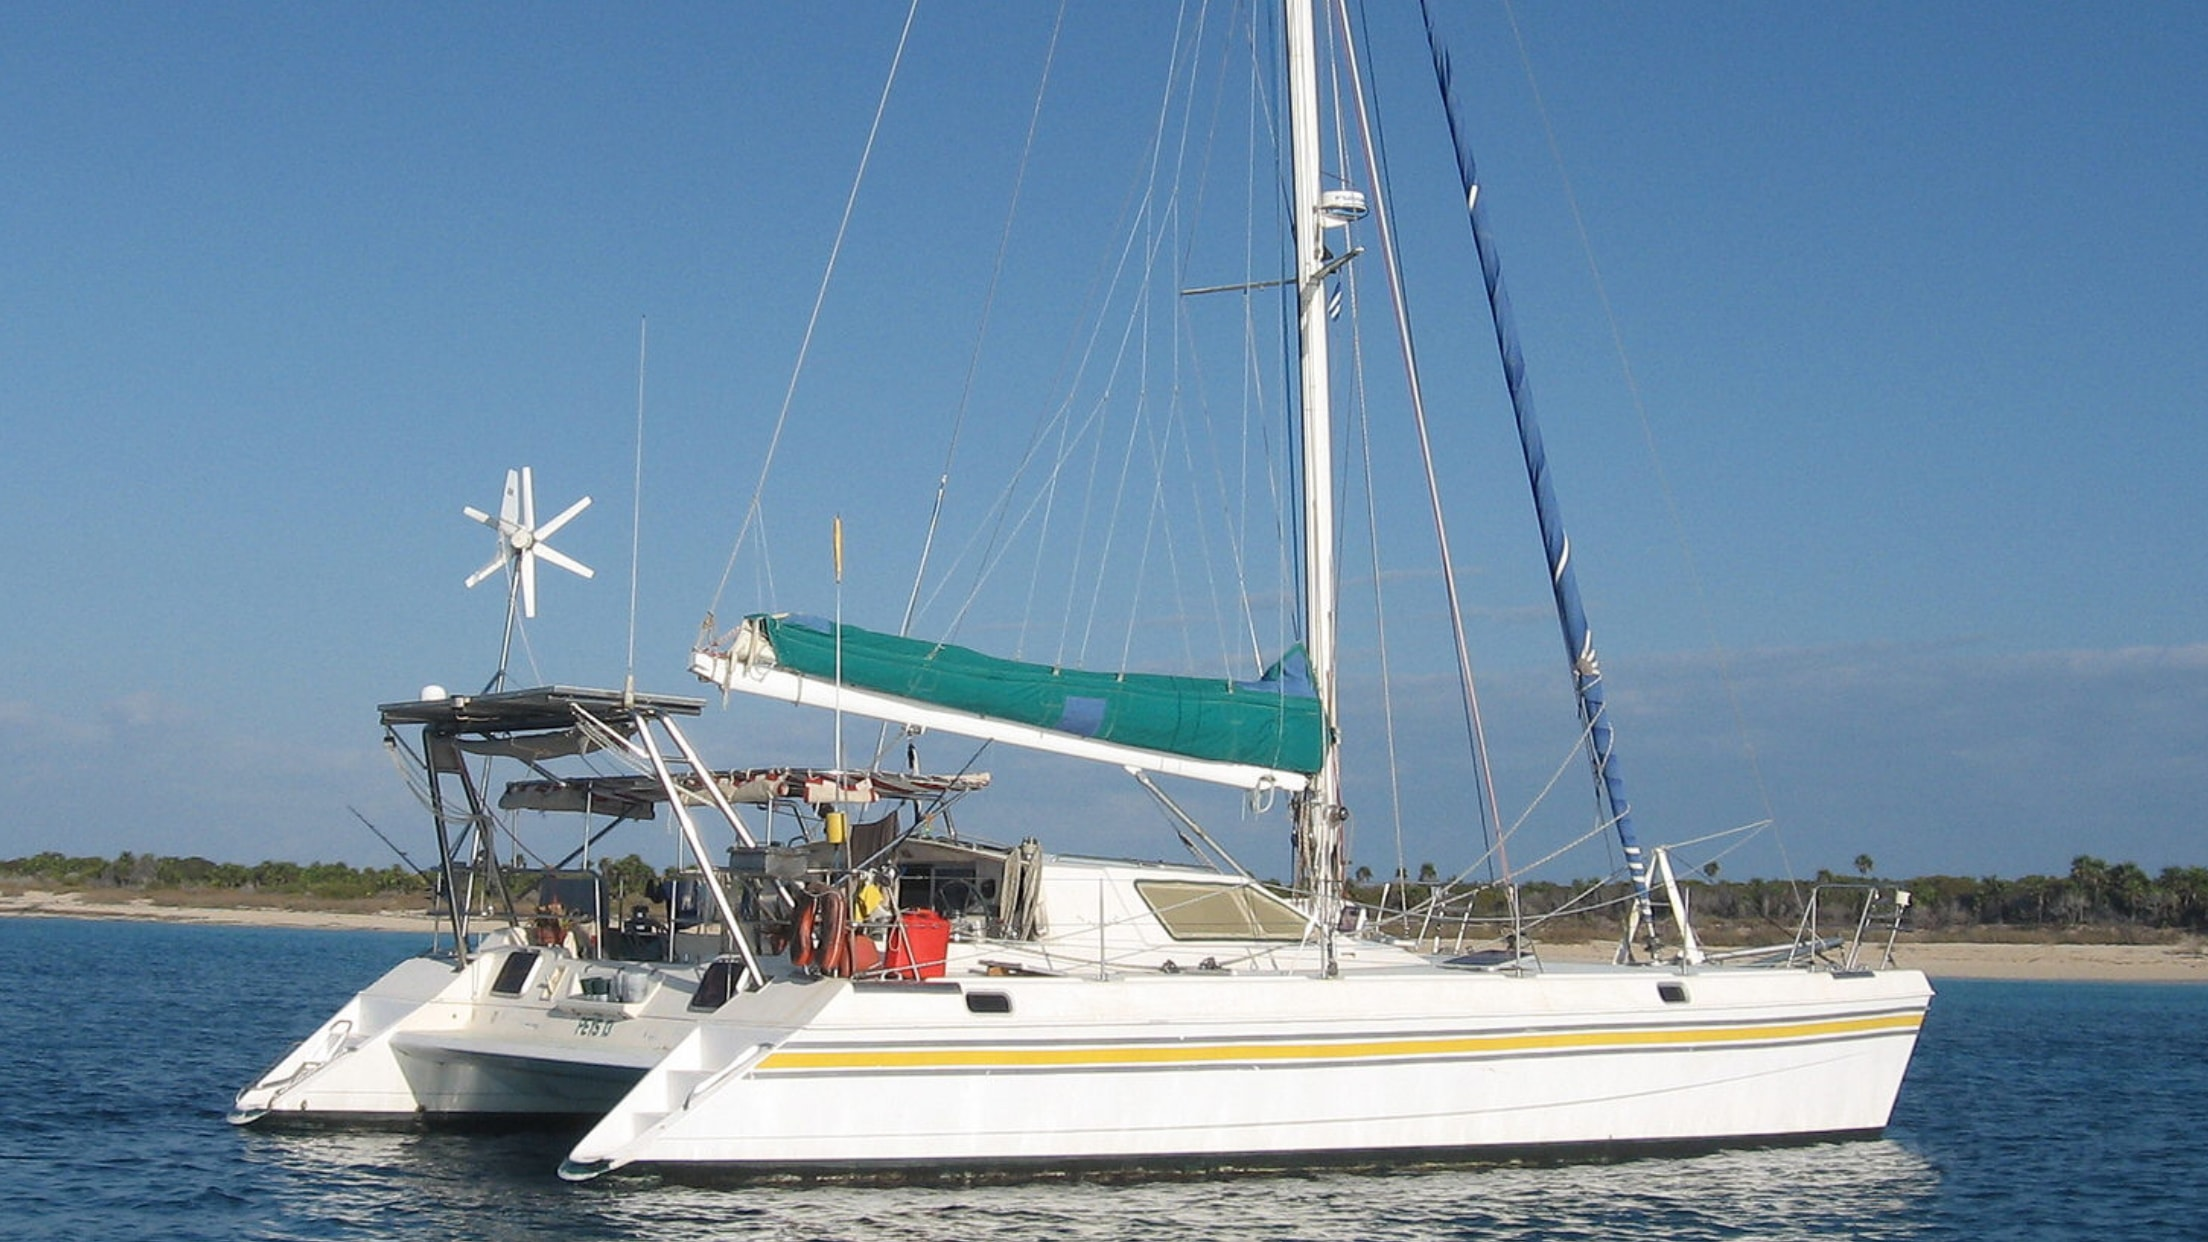 Catamarans BIRDWING, Manufacturer: ST. FRANCIS, Model Year: 1994, Length: 44ft, Model: St. Francis 44 Mark II, Condition: Preowned, Listing Status: Catamaran for Sale, Price: USD 159000